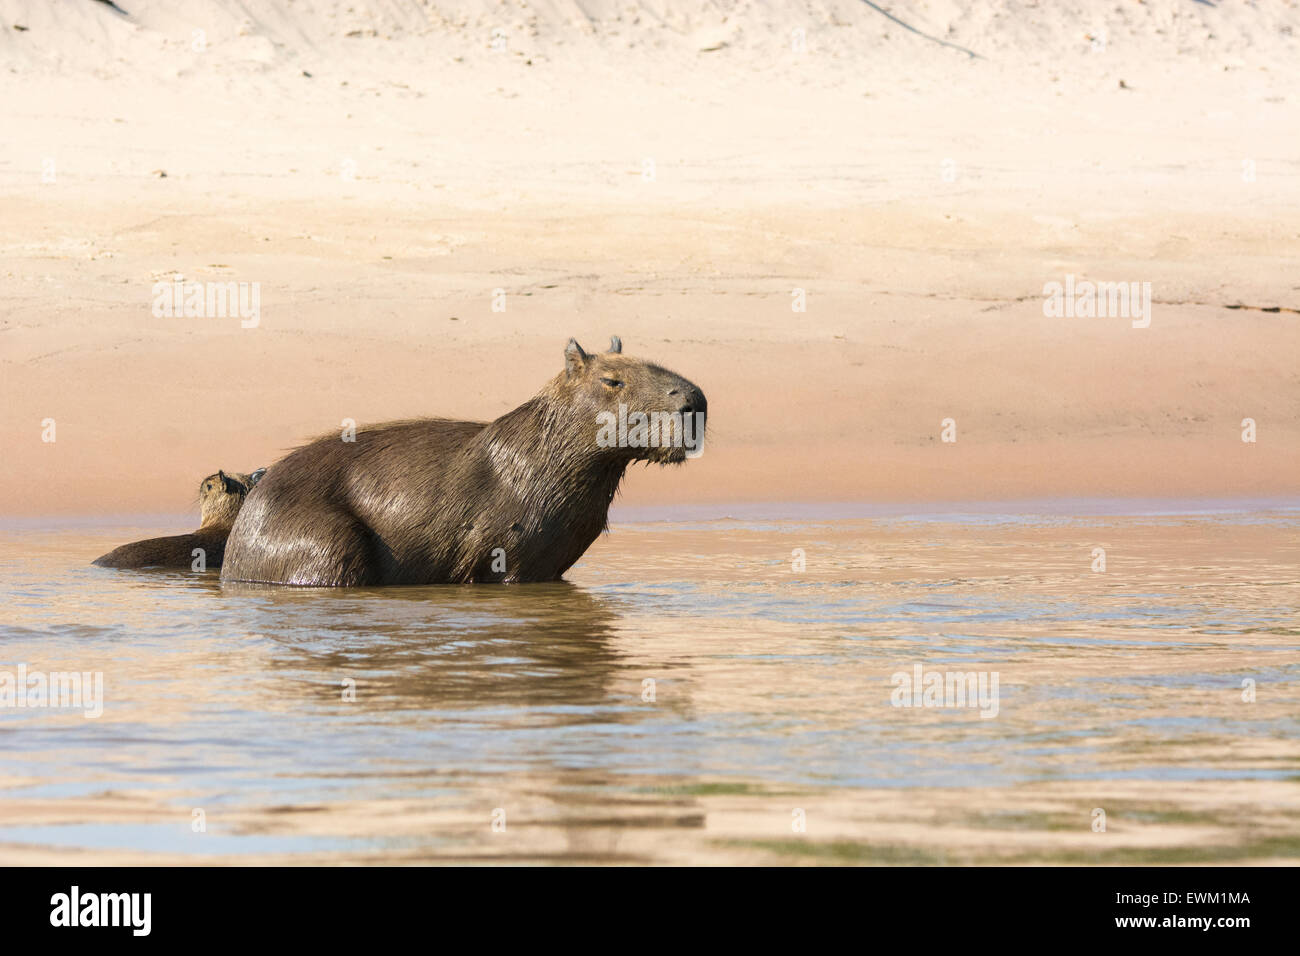 Wild, adult female Capybara, Hydrochaeris hydrochaeris, with her pup in a river in the Pantanal, Brazil, South America Stock Photo